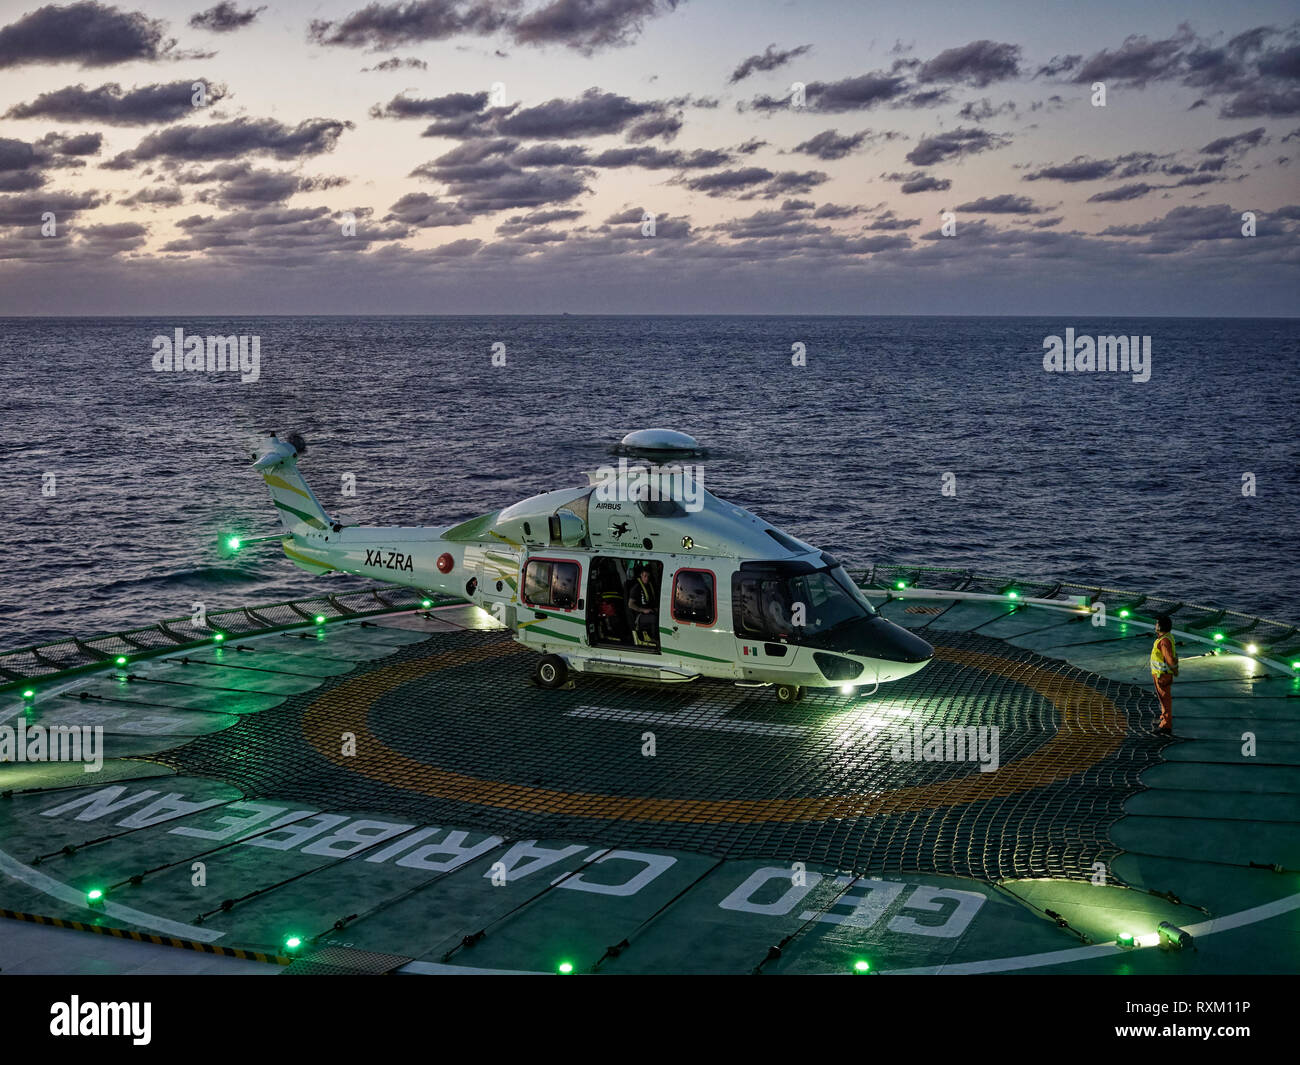 An Augusta 155 Medevac Helicopter on deck of a Ship for a Night Landing in the Gulf Of Mexico to pick up a Walking Casualty. Mexico - Stock Image